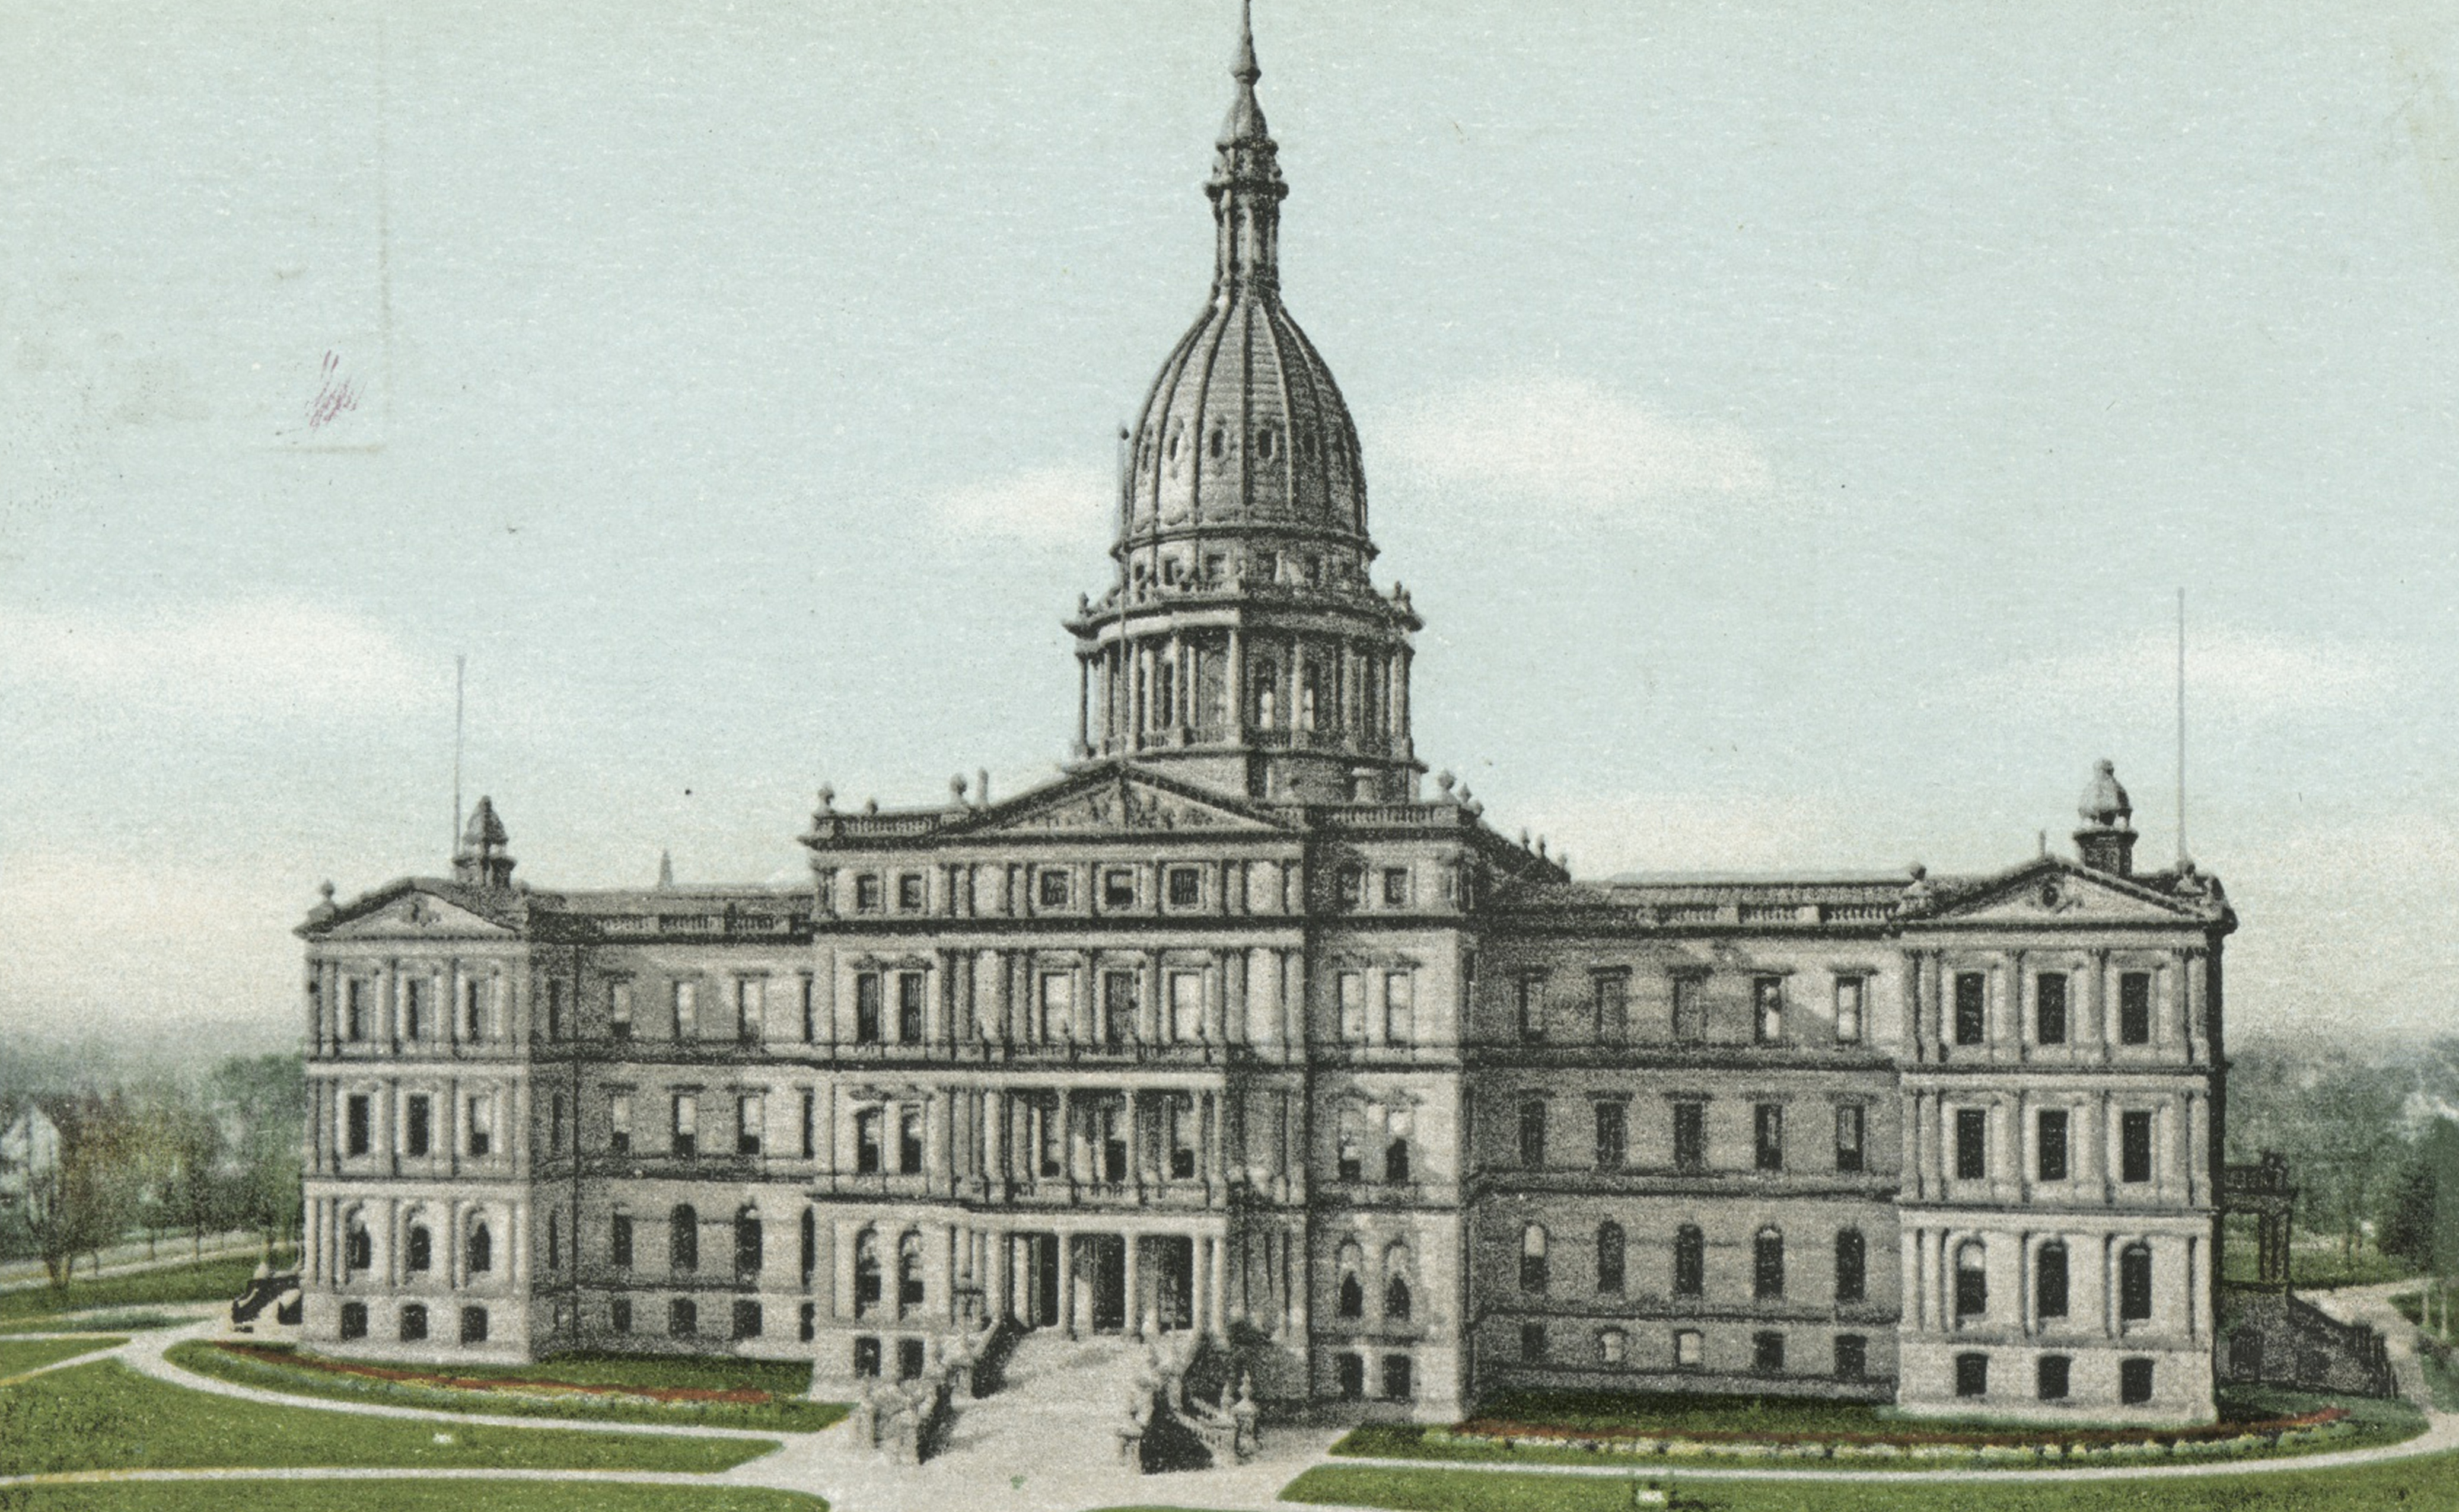 Postcard of the exterior of the Michigan State Capitol building, Lansing, Michigan, 1914. From the New York Public Library. In the 19th century, Michigan was the harbinger of a wave of state laws criminalizing seduction.